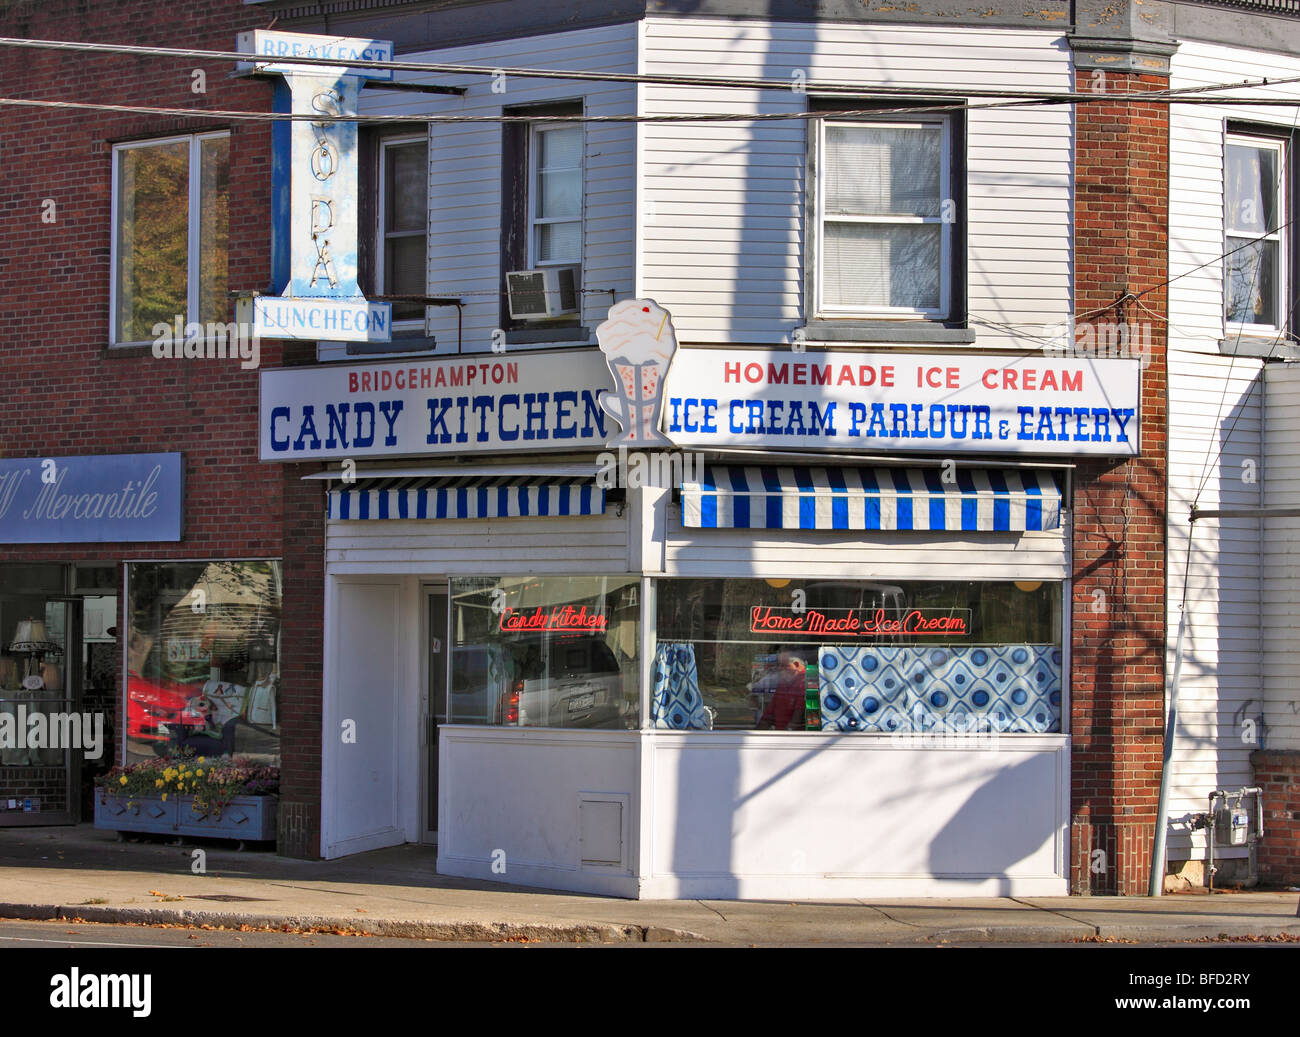 The Candy Kitchen Luncheonette And Ice Cream Parlor